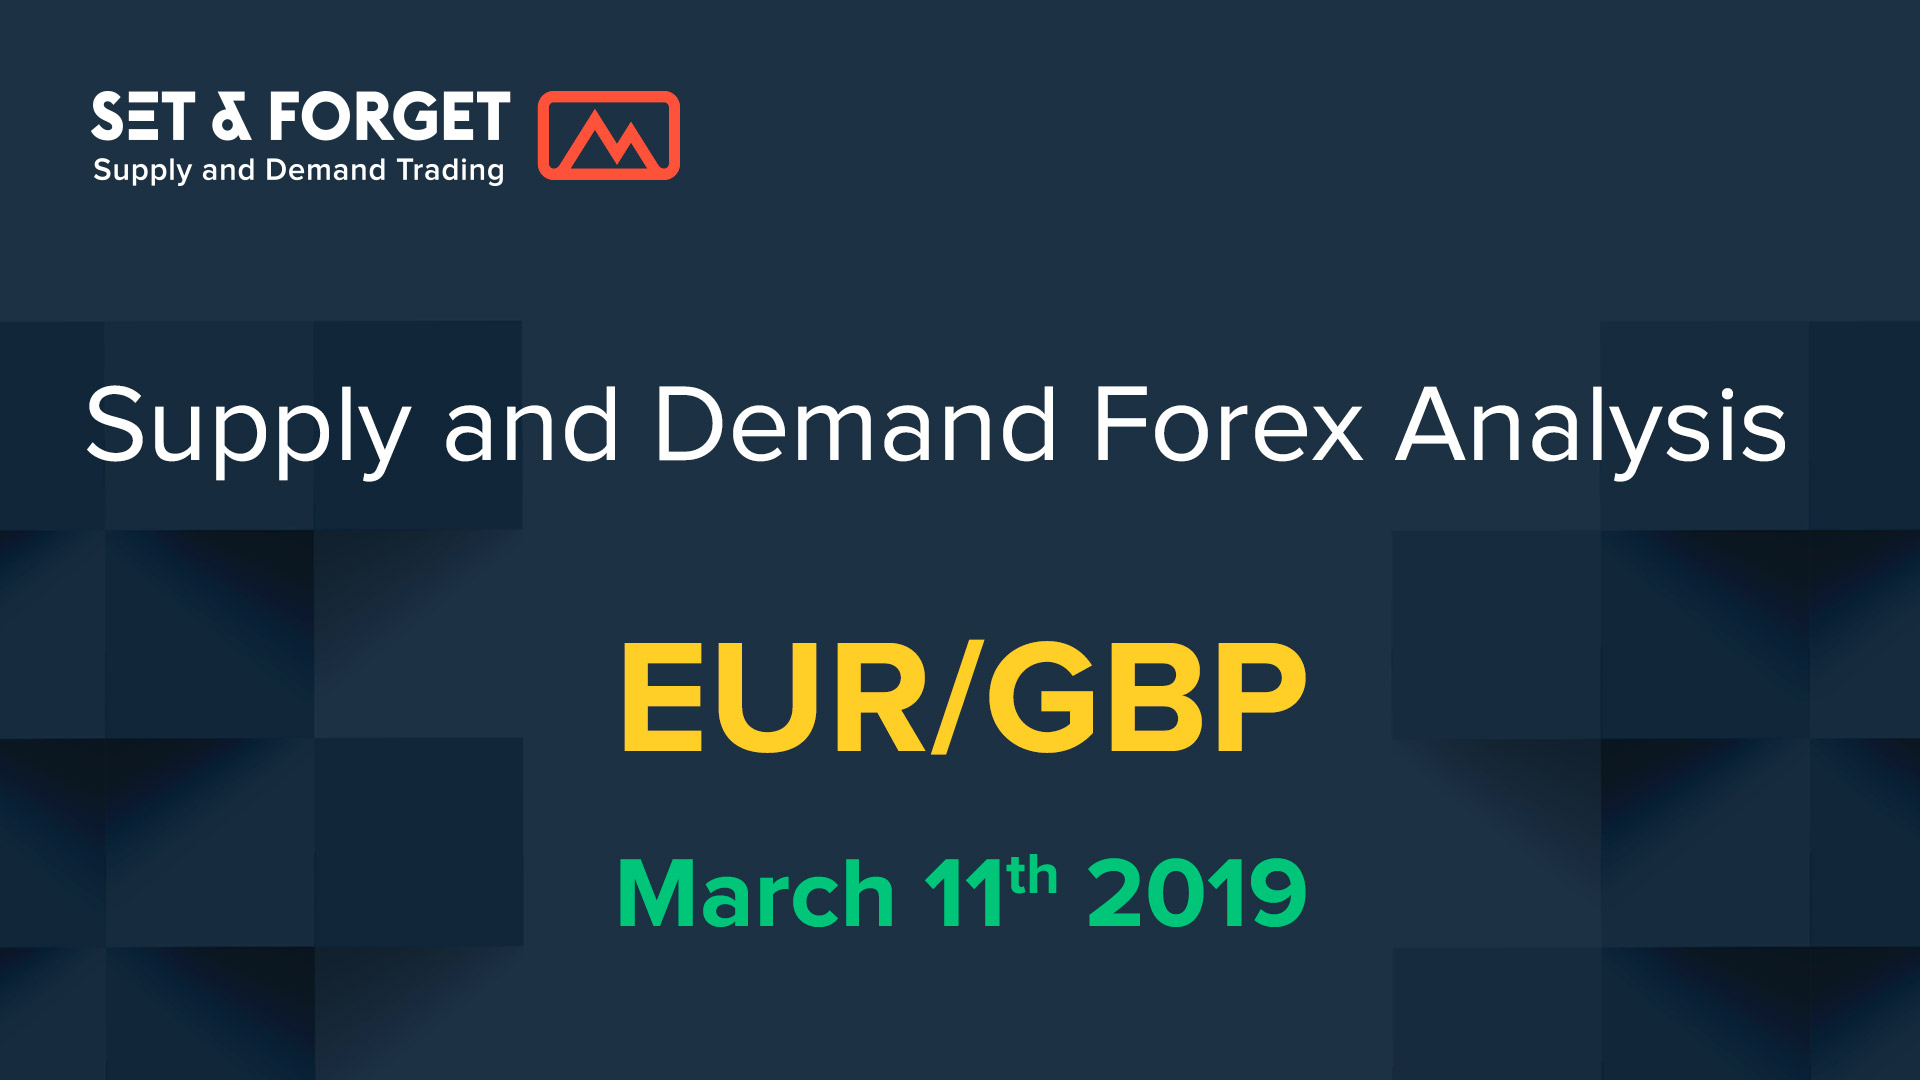 Eurgbp forex trading discussion